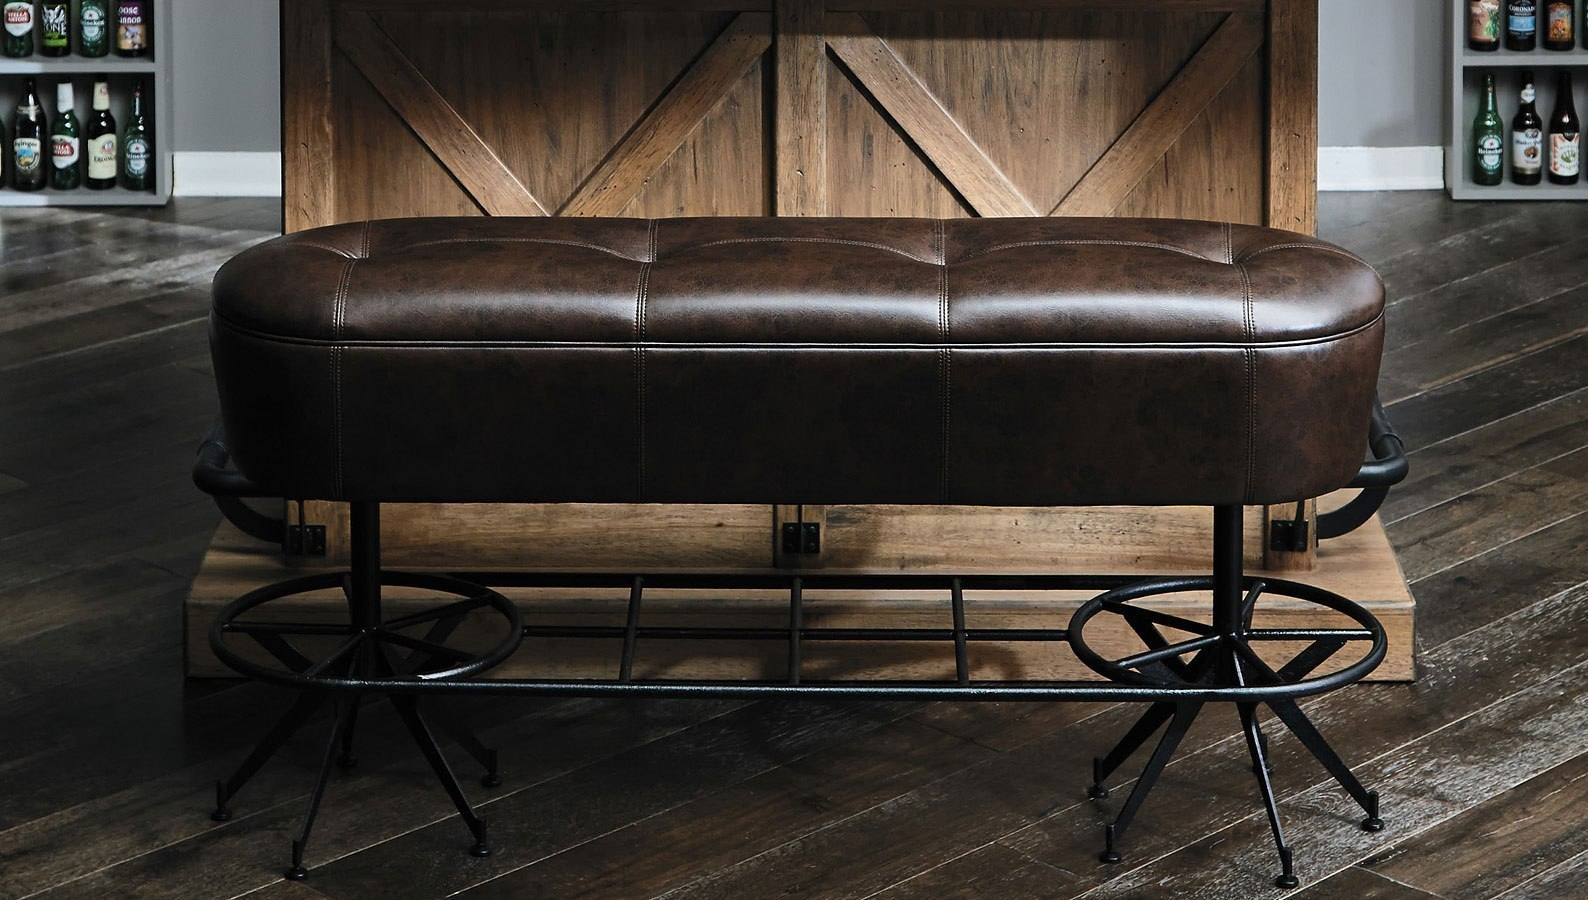 Furniture City Brewing Blonde Ale House Bar Bench